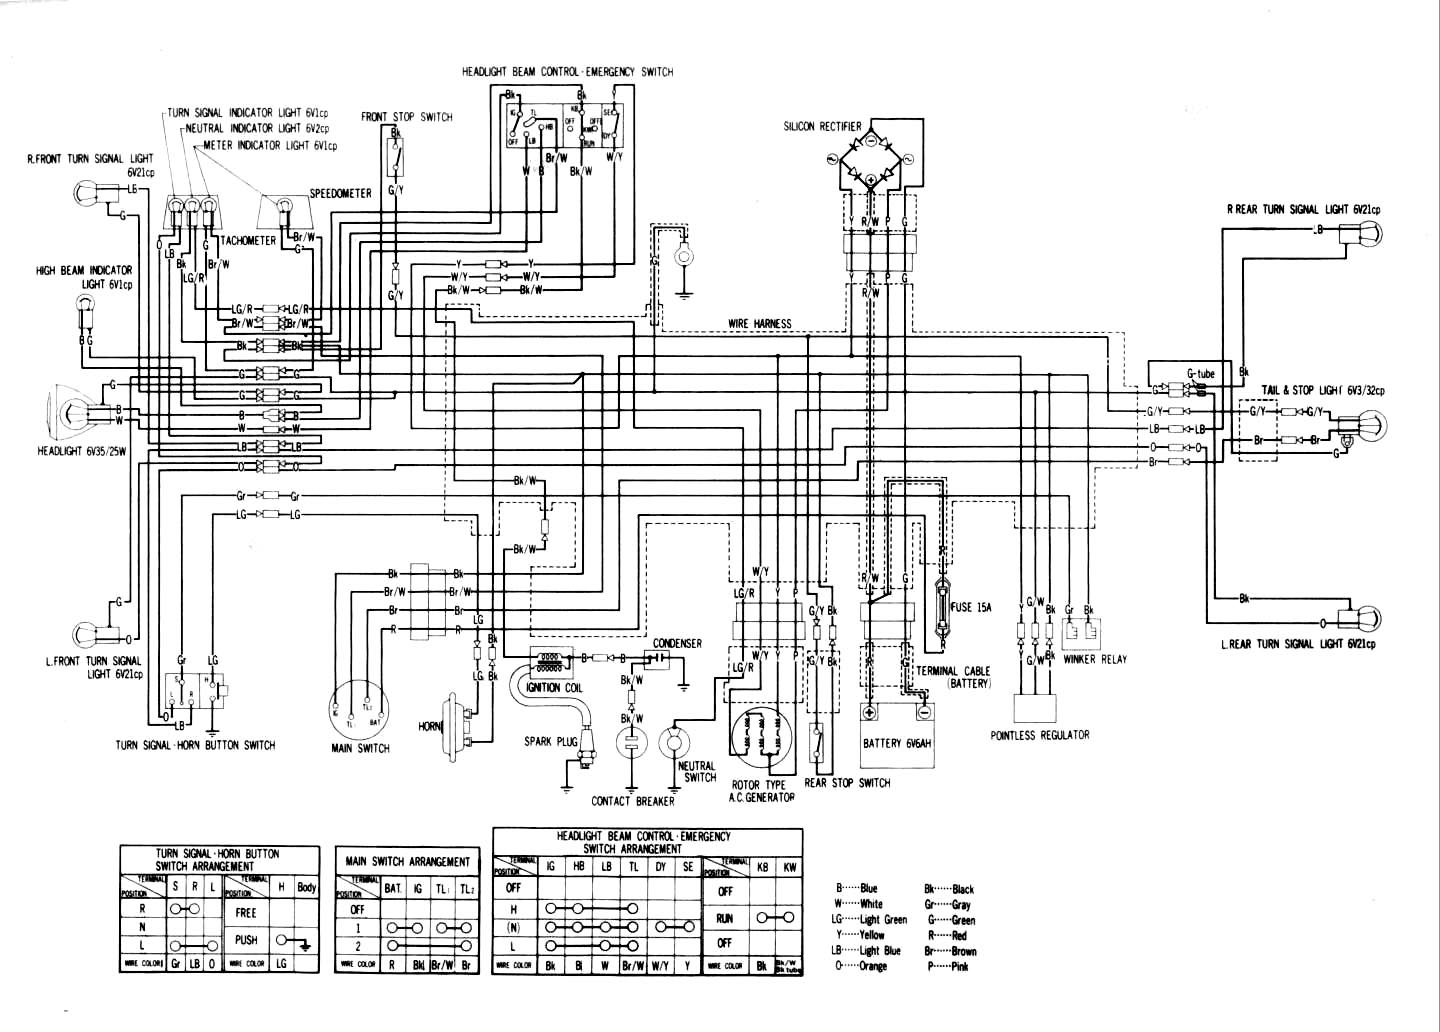 Easton Emergency Ballast Wiring Diagram further Wiring Diagram Honda Hor together with  on xbox 360 e power supply fuse